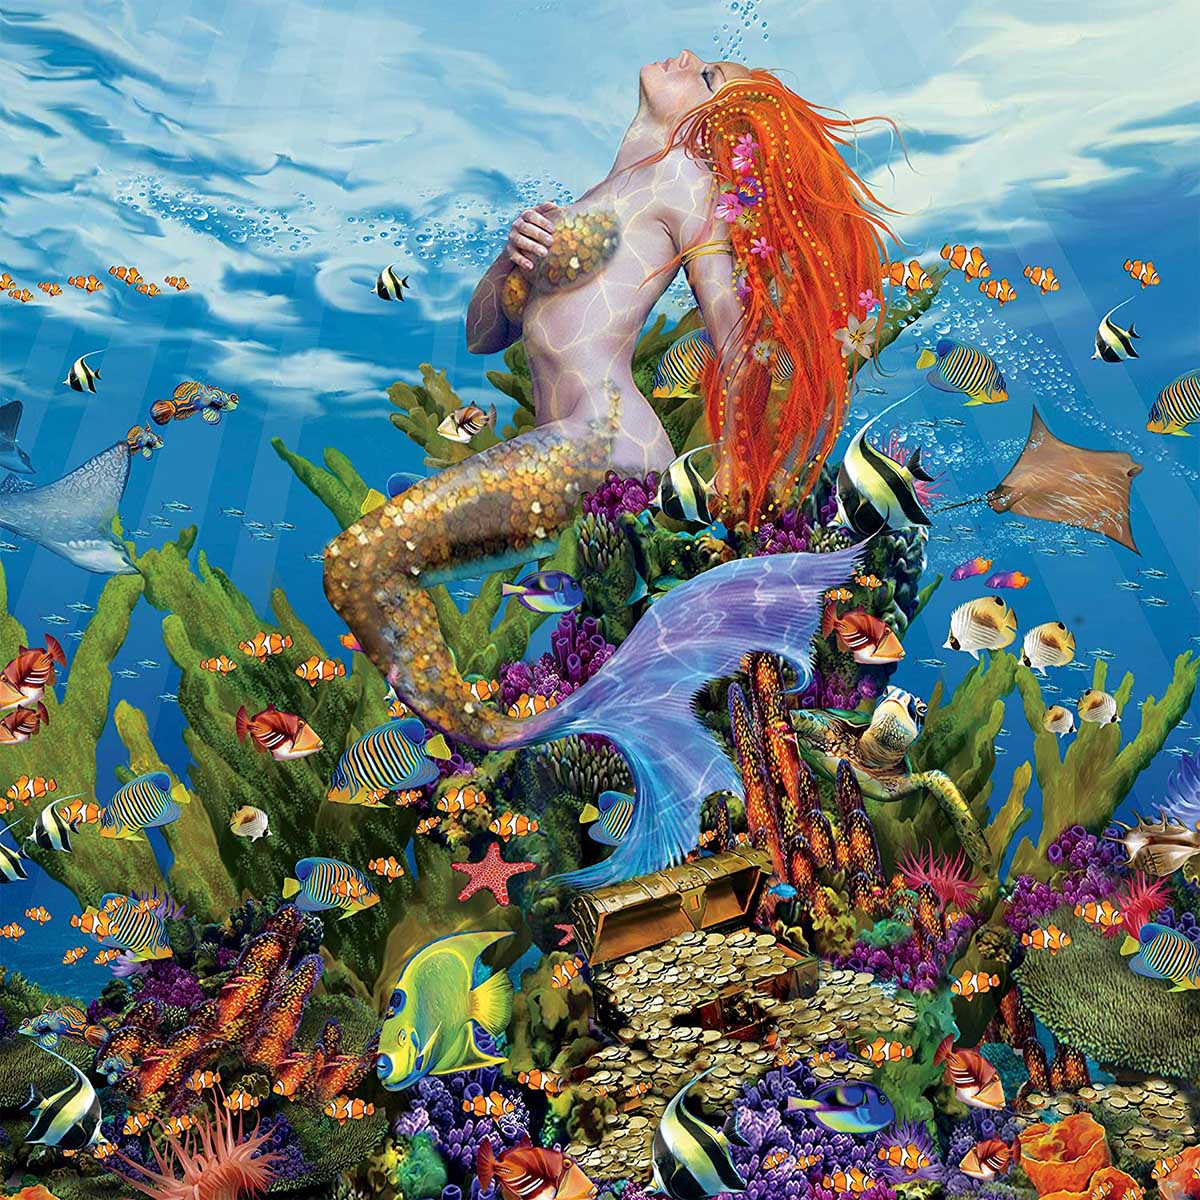 Ocean Nymph Under The Sea Jigsaw Puzzle